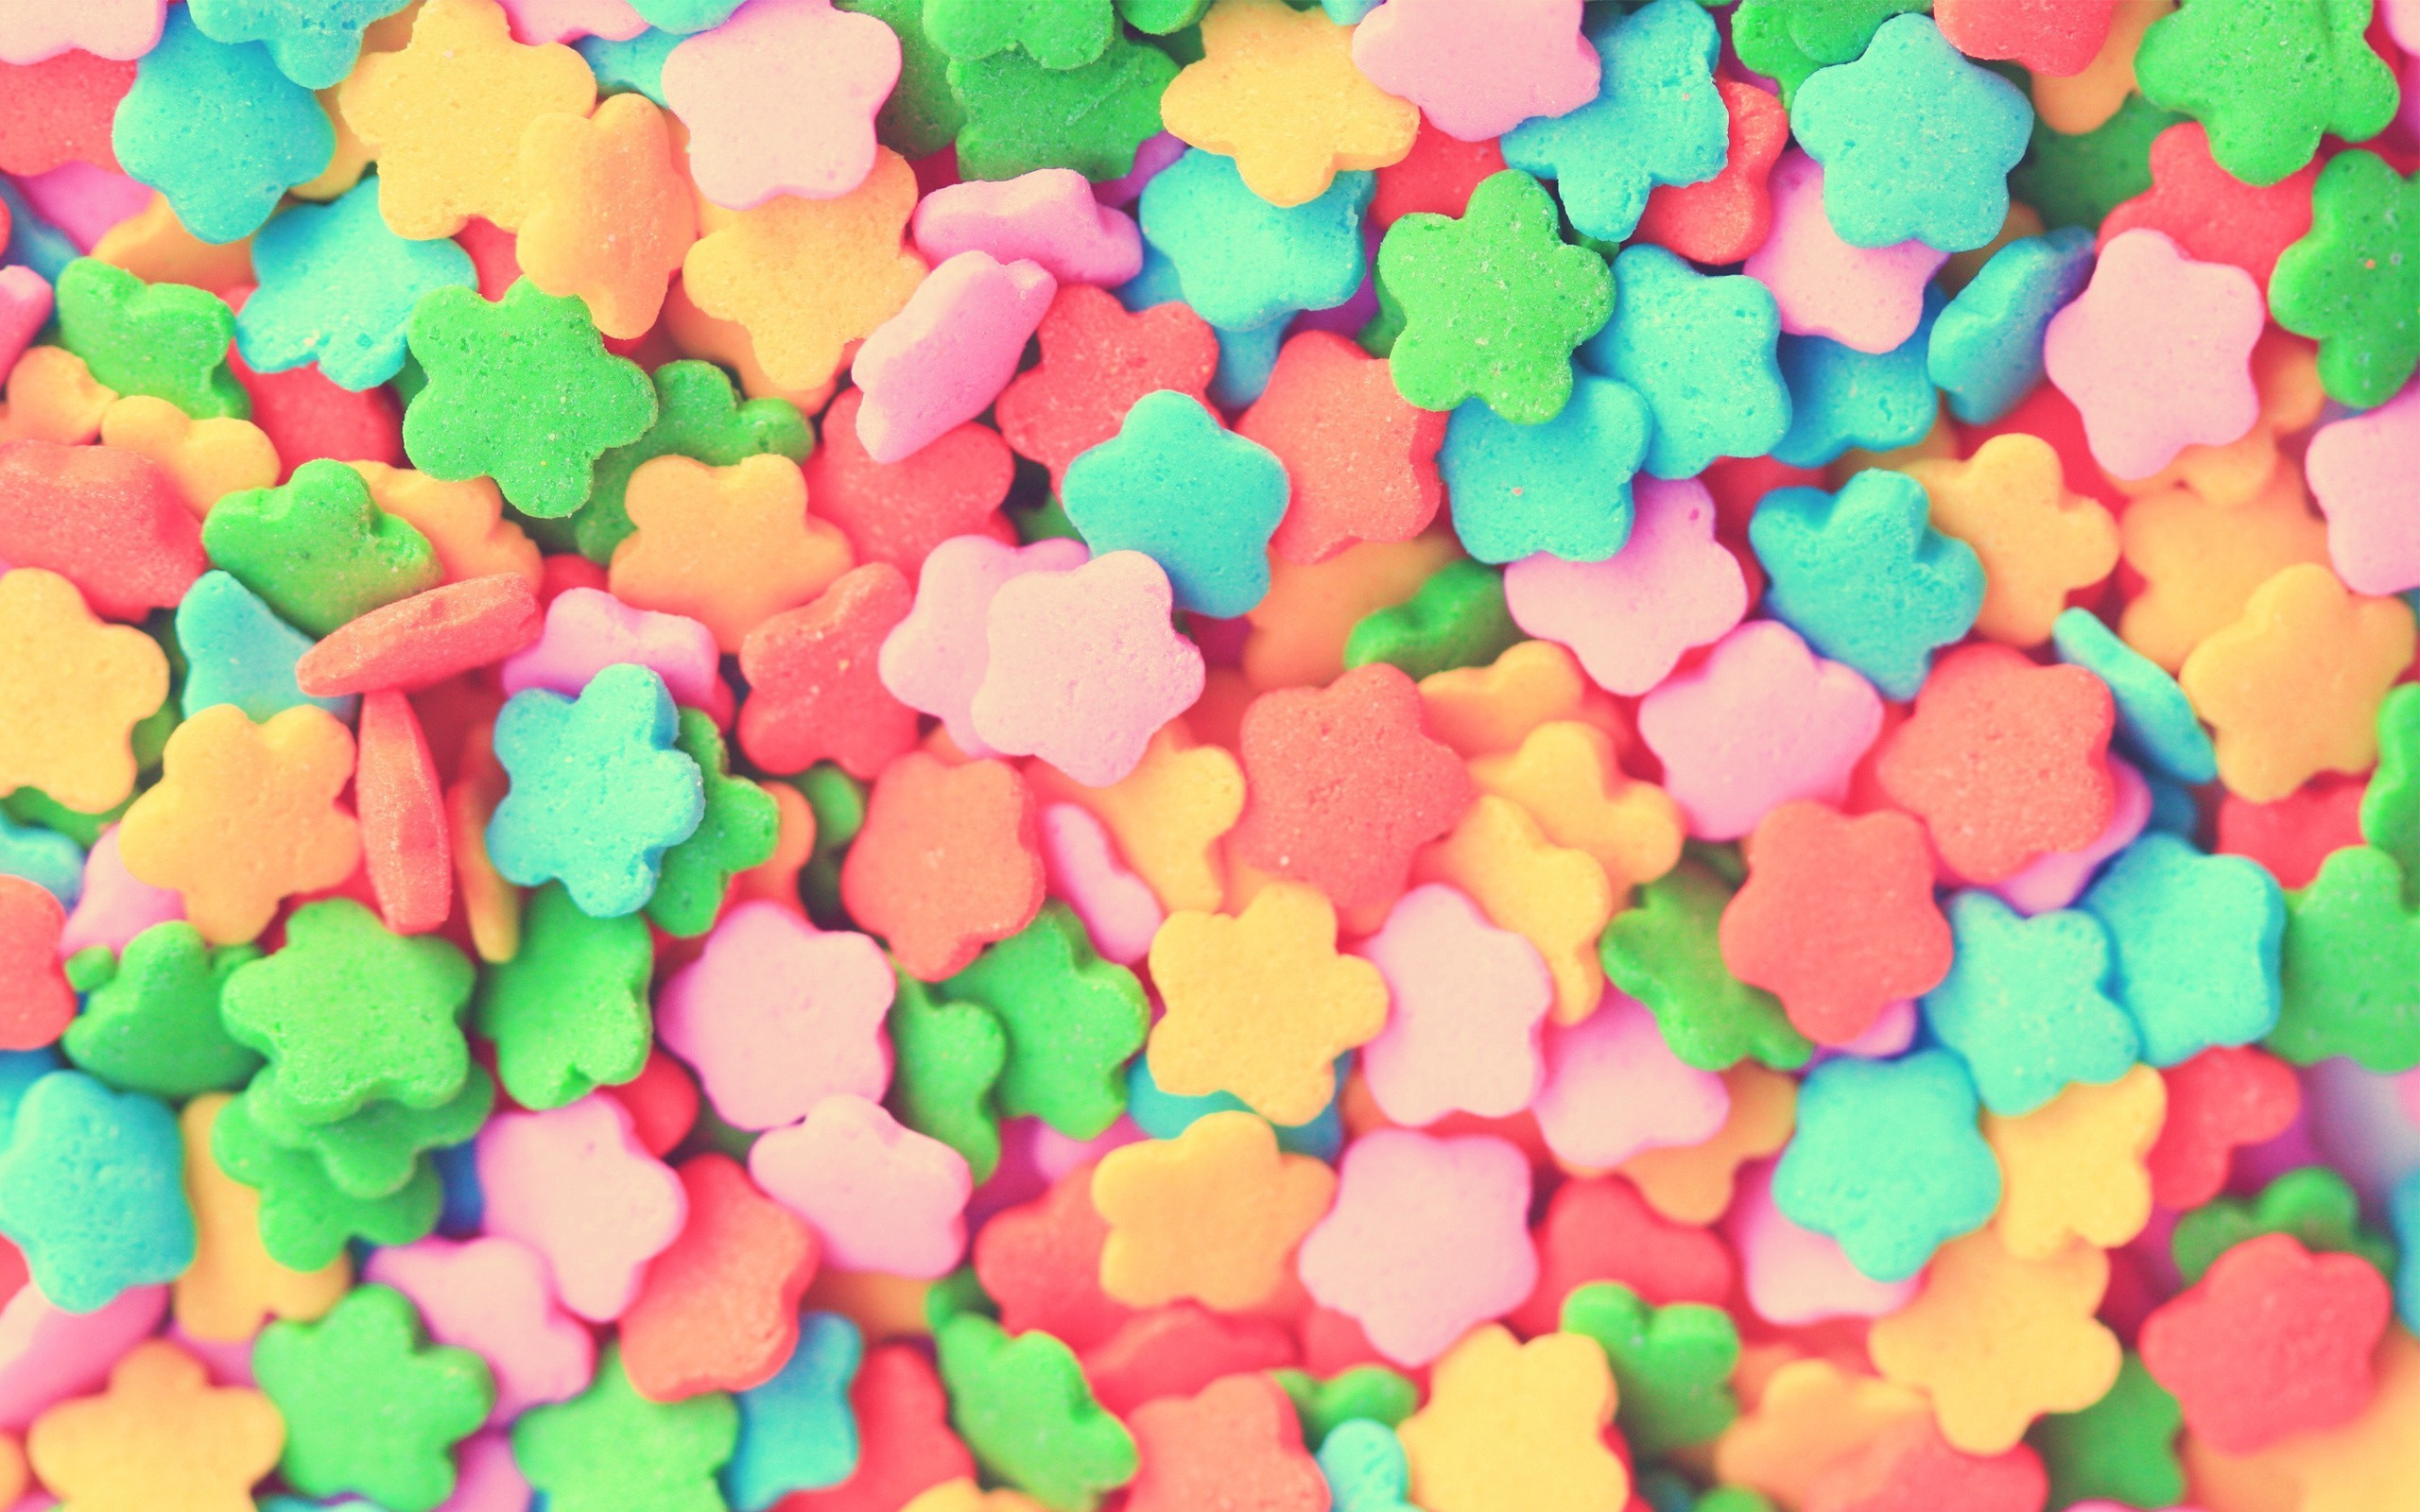 15 Wonderful HD Candy Wallpapers